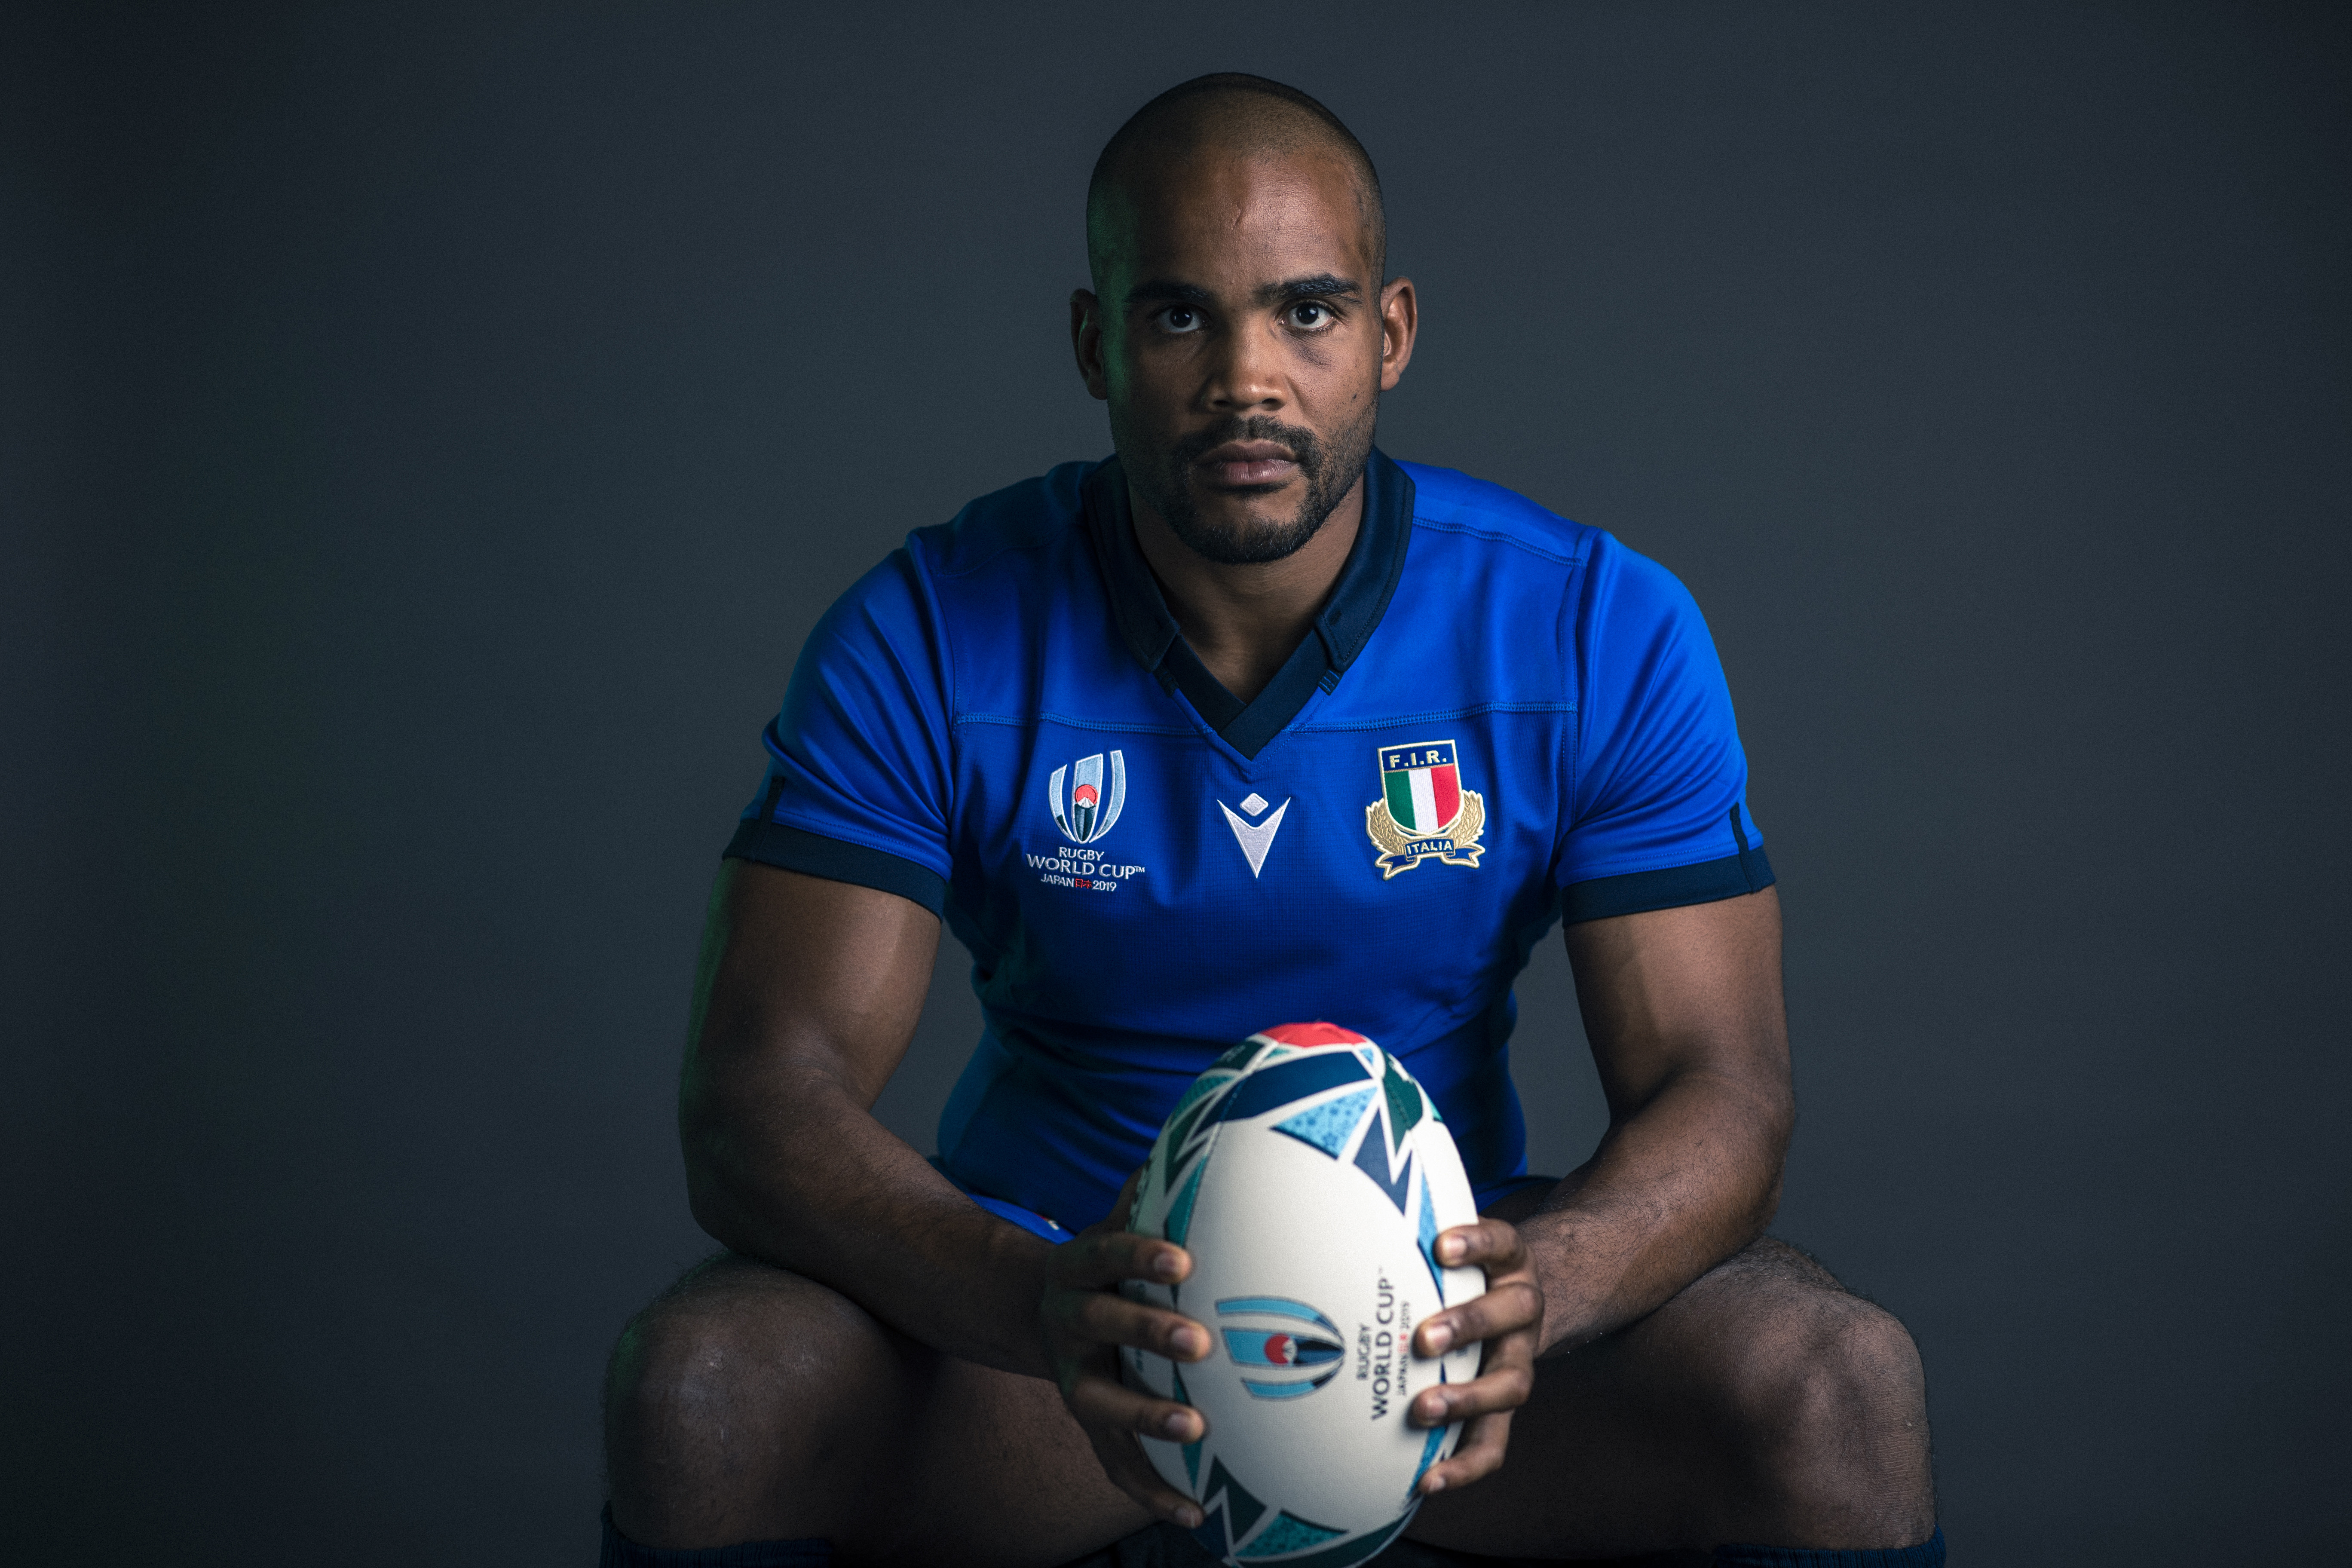 Italy star Maxime Mbanda made 'Knight of the Republic' - Rugby World